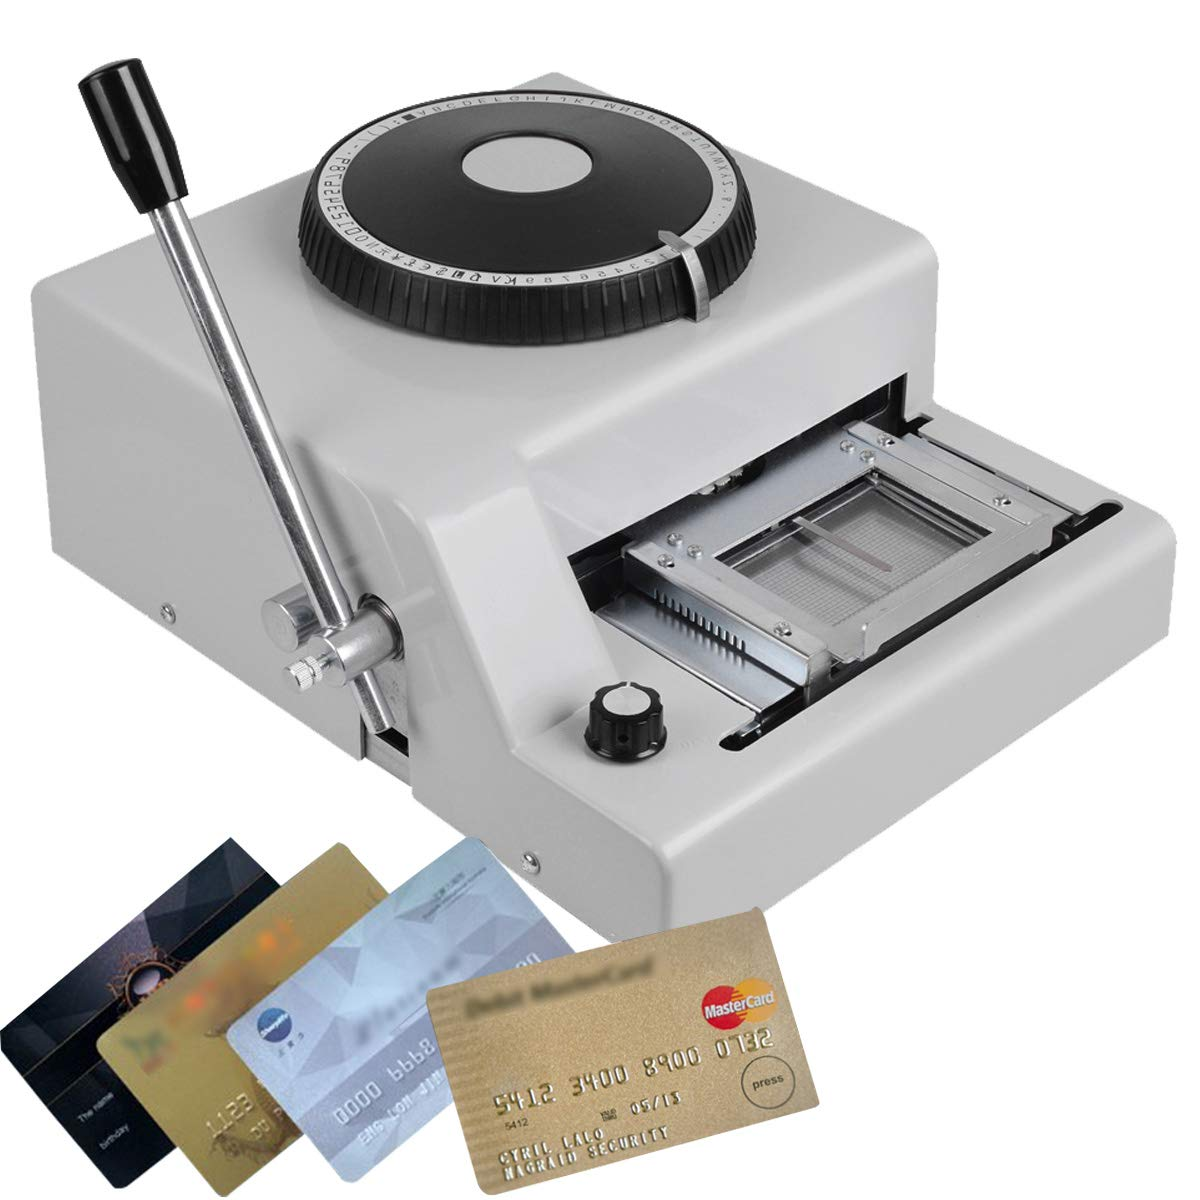 CARESHINE 72 Character Manual Embossing Machine PVC Card Embosser for VIP Card Club Card Printing Ship from USA 2-5 Days Delivery